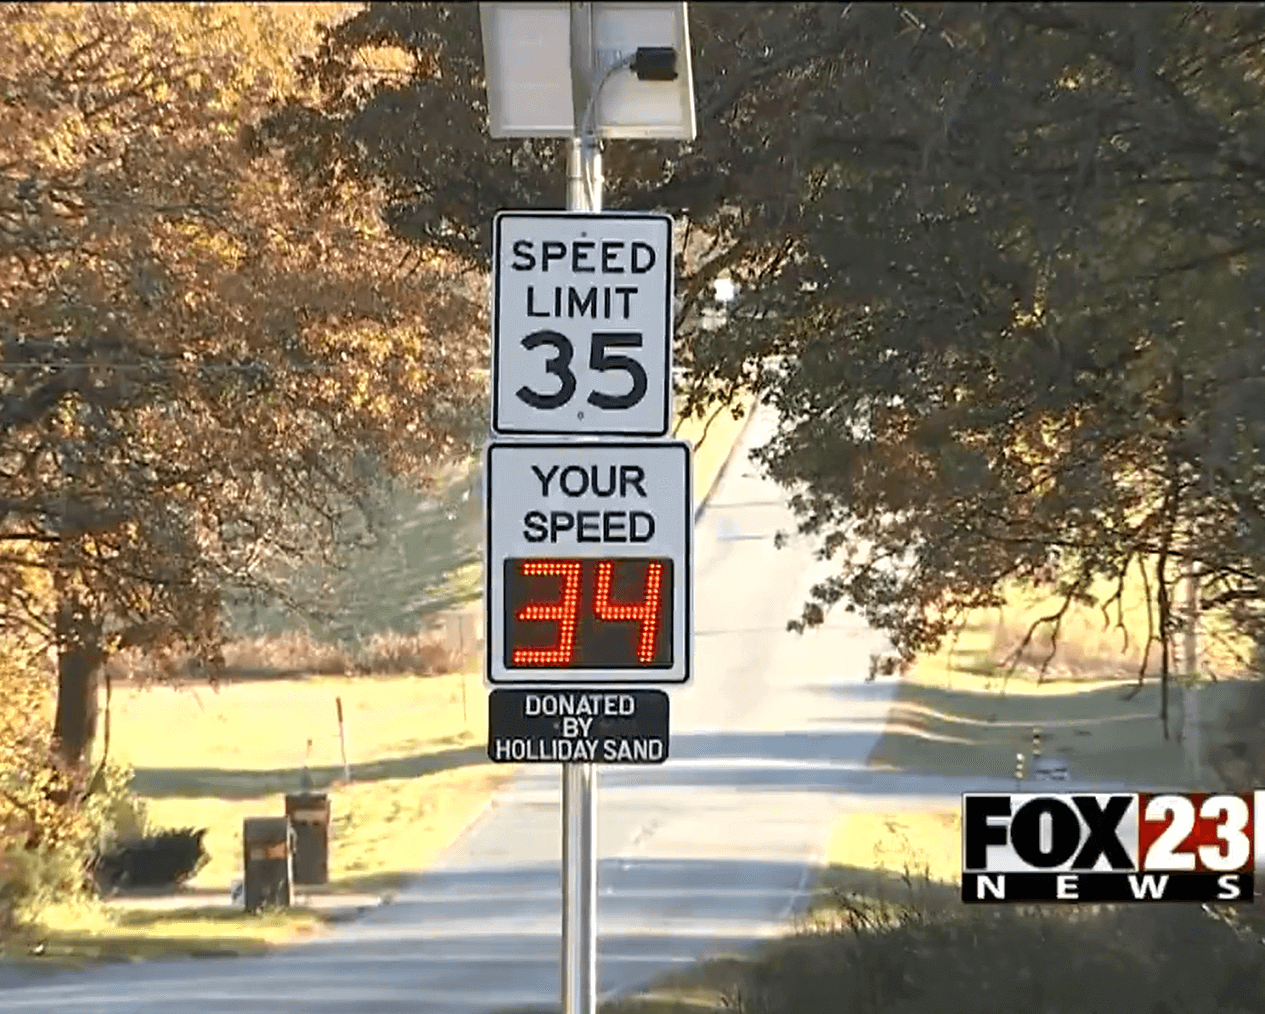 Reference Guide to Grant Funding for Radar Speed Signs